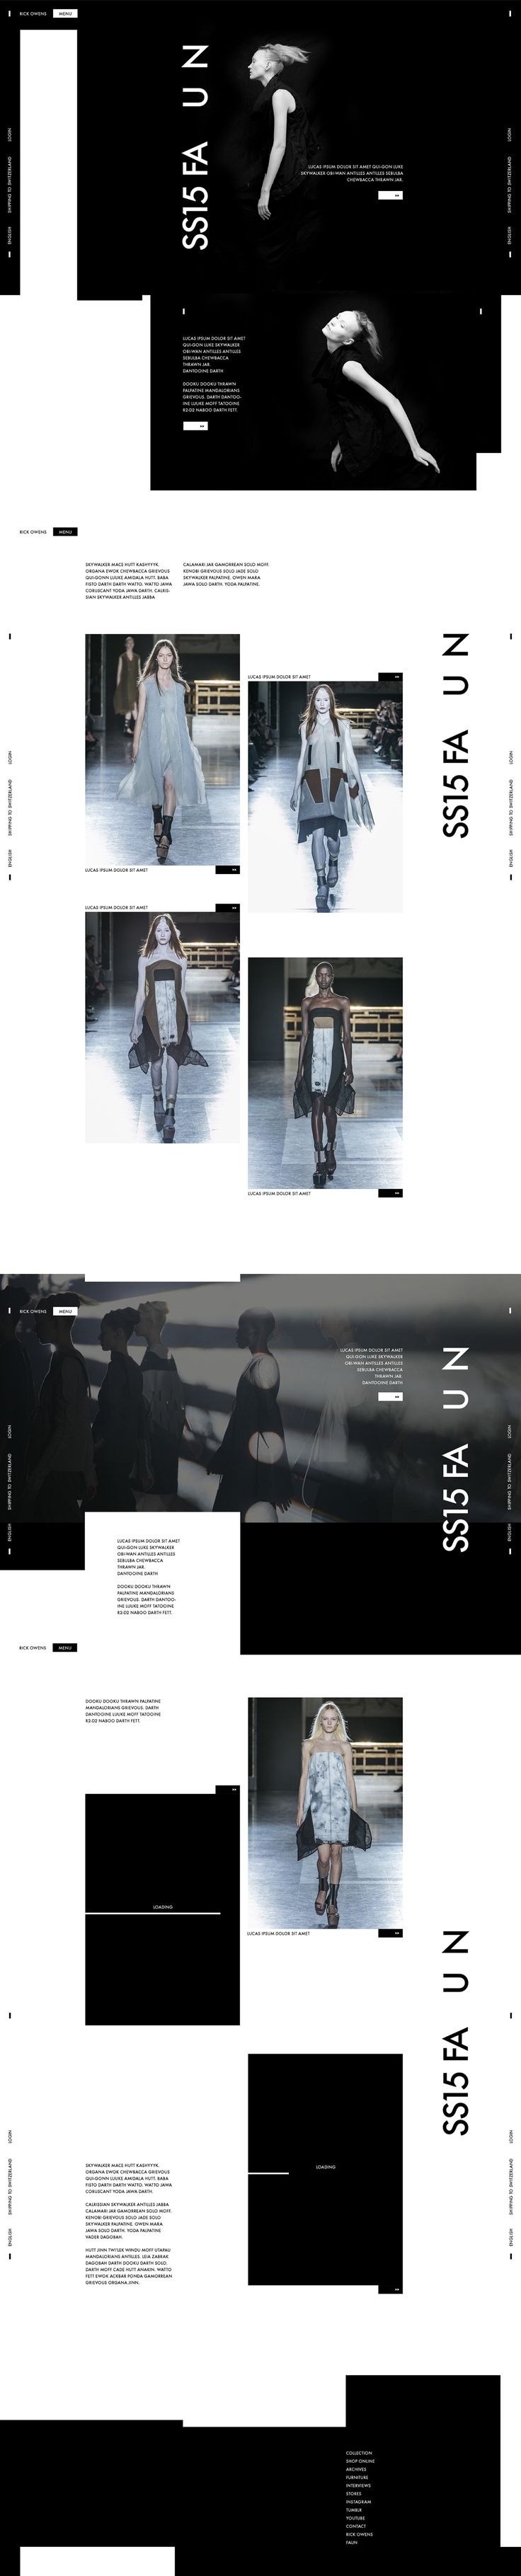 Web | Rick Owens Concept on Behance #web #webdesign #design #layout #grid #fashion #minimalist #black #white #ecommerce